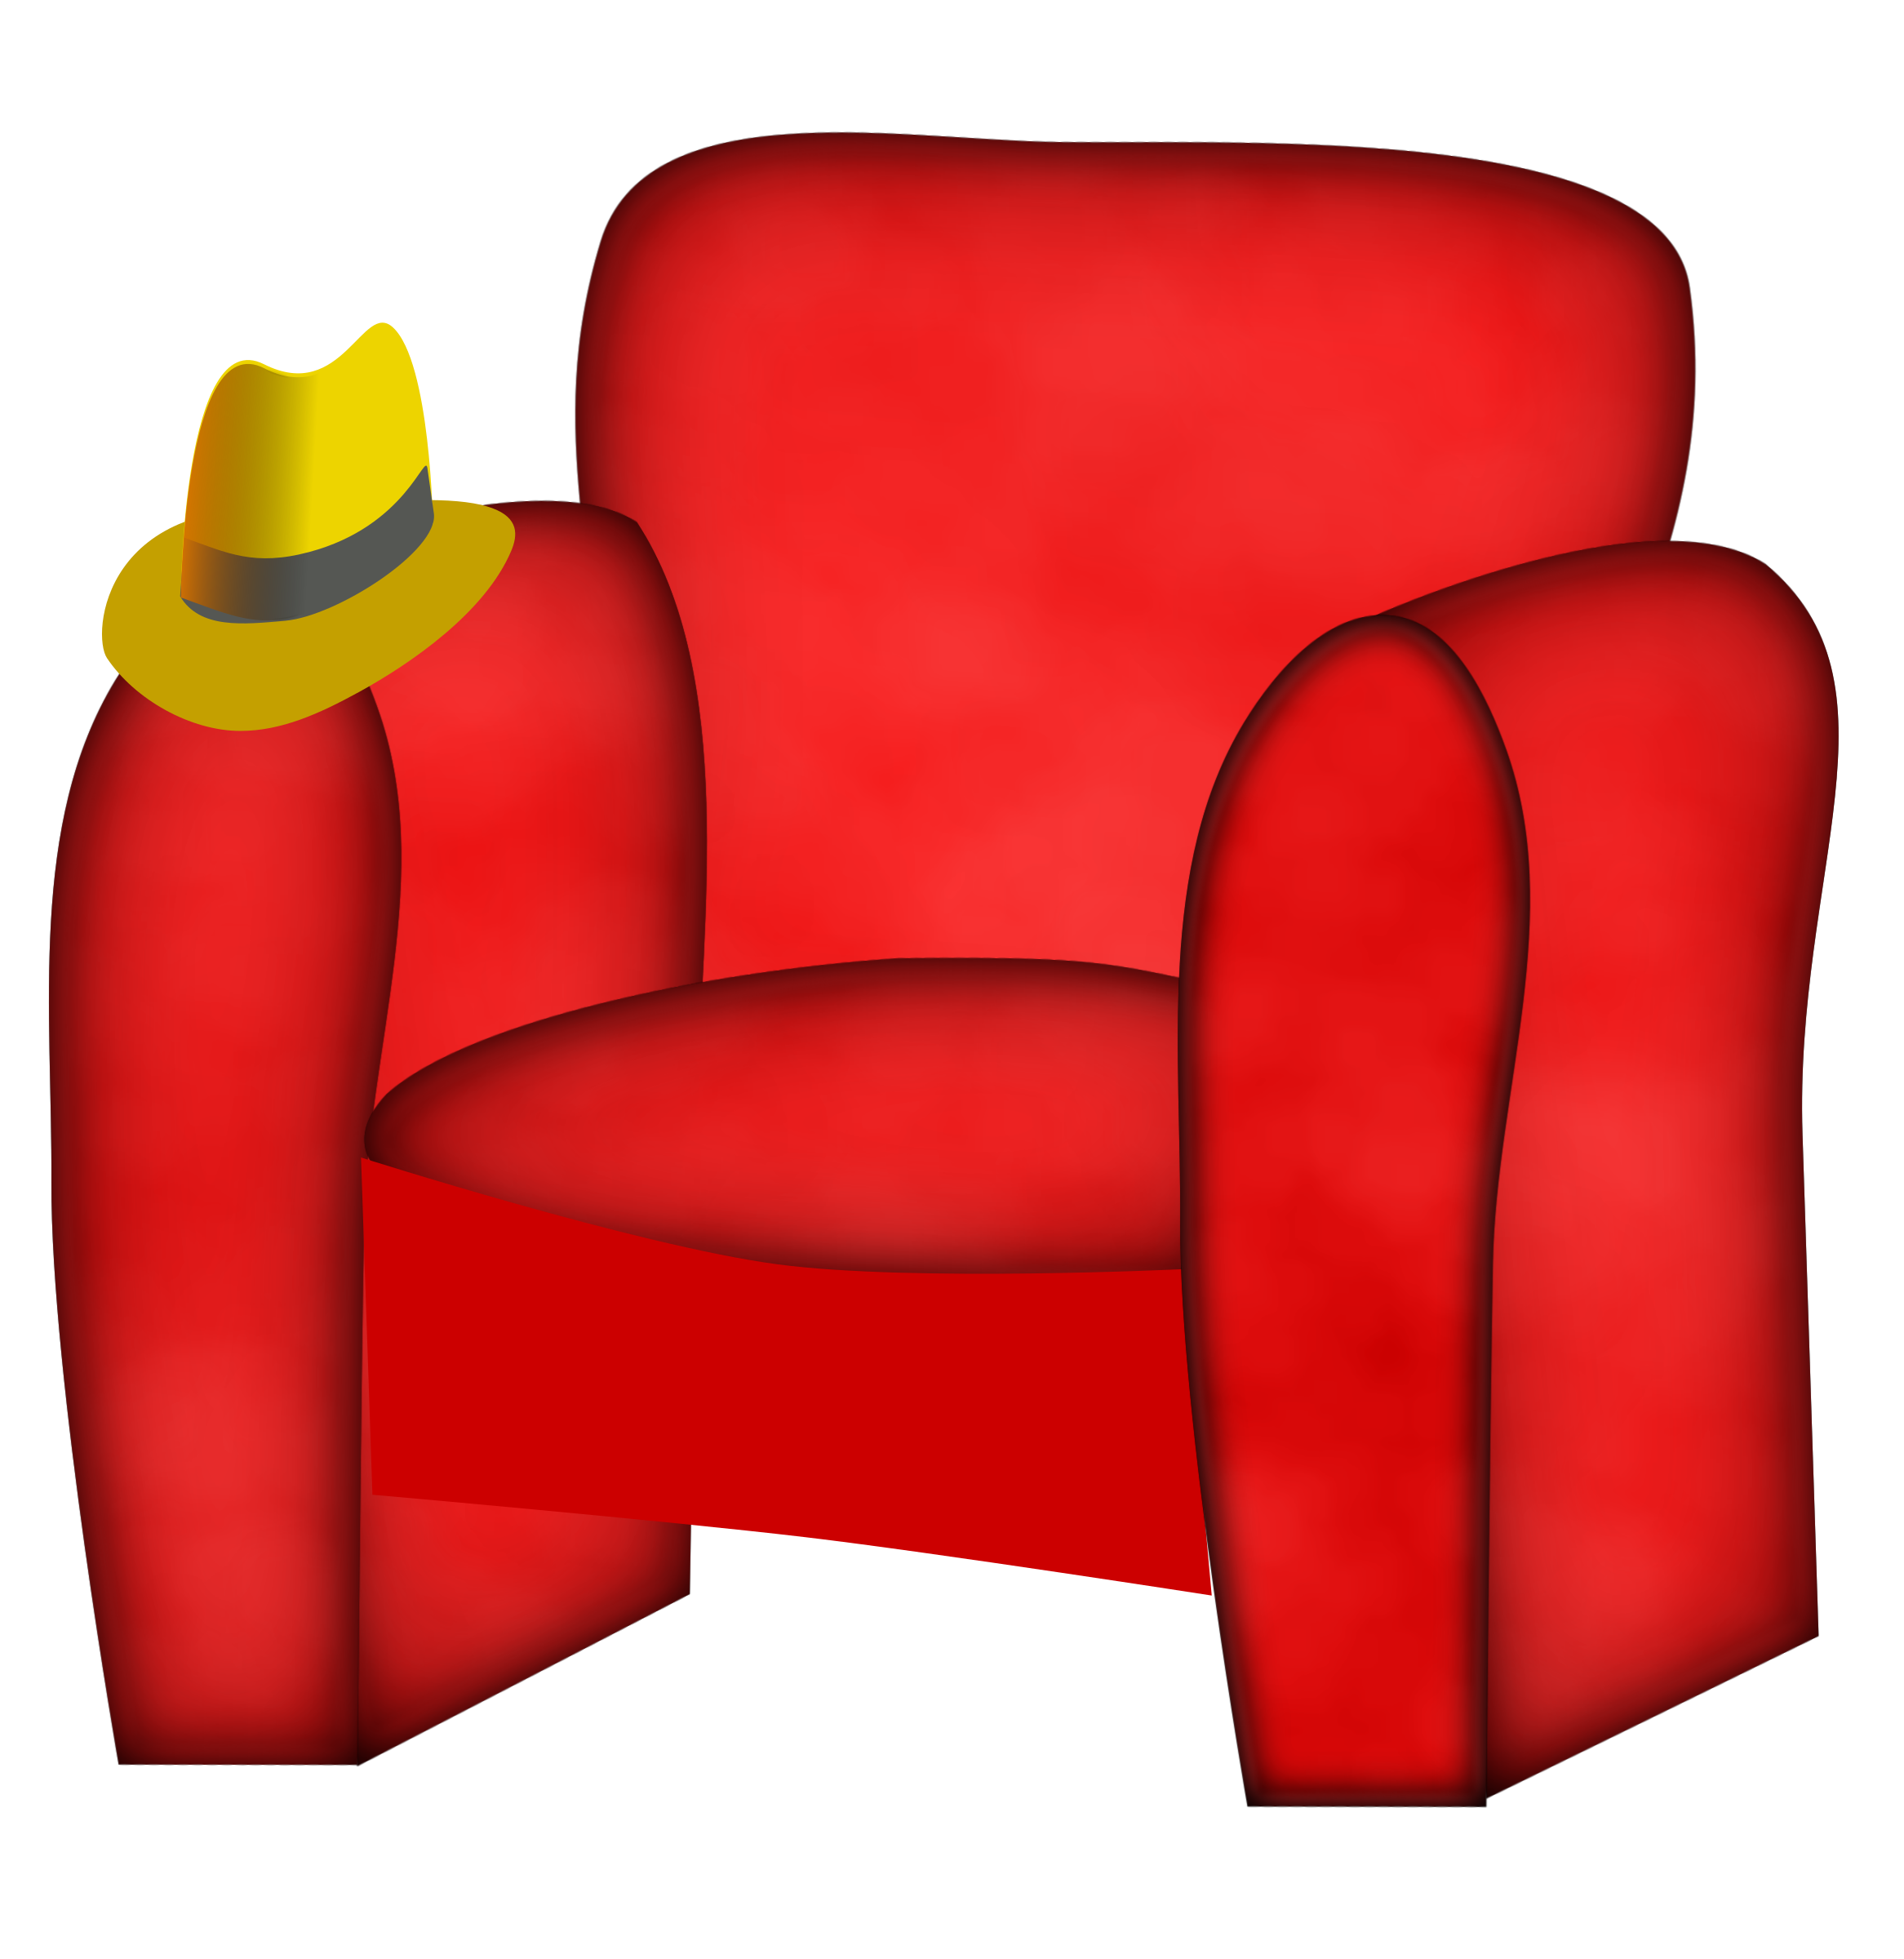 Arm Chair Clip Art | www.imgkid.com - The Image Kid Has It!